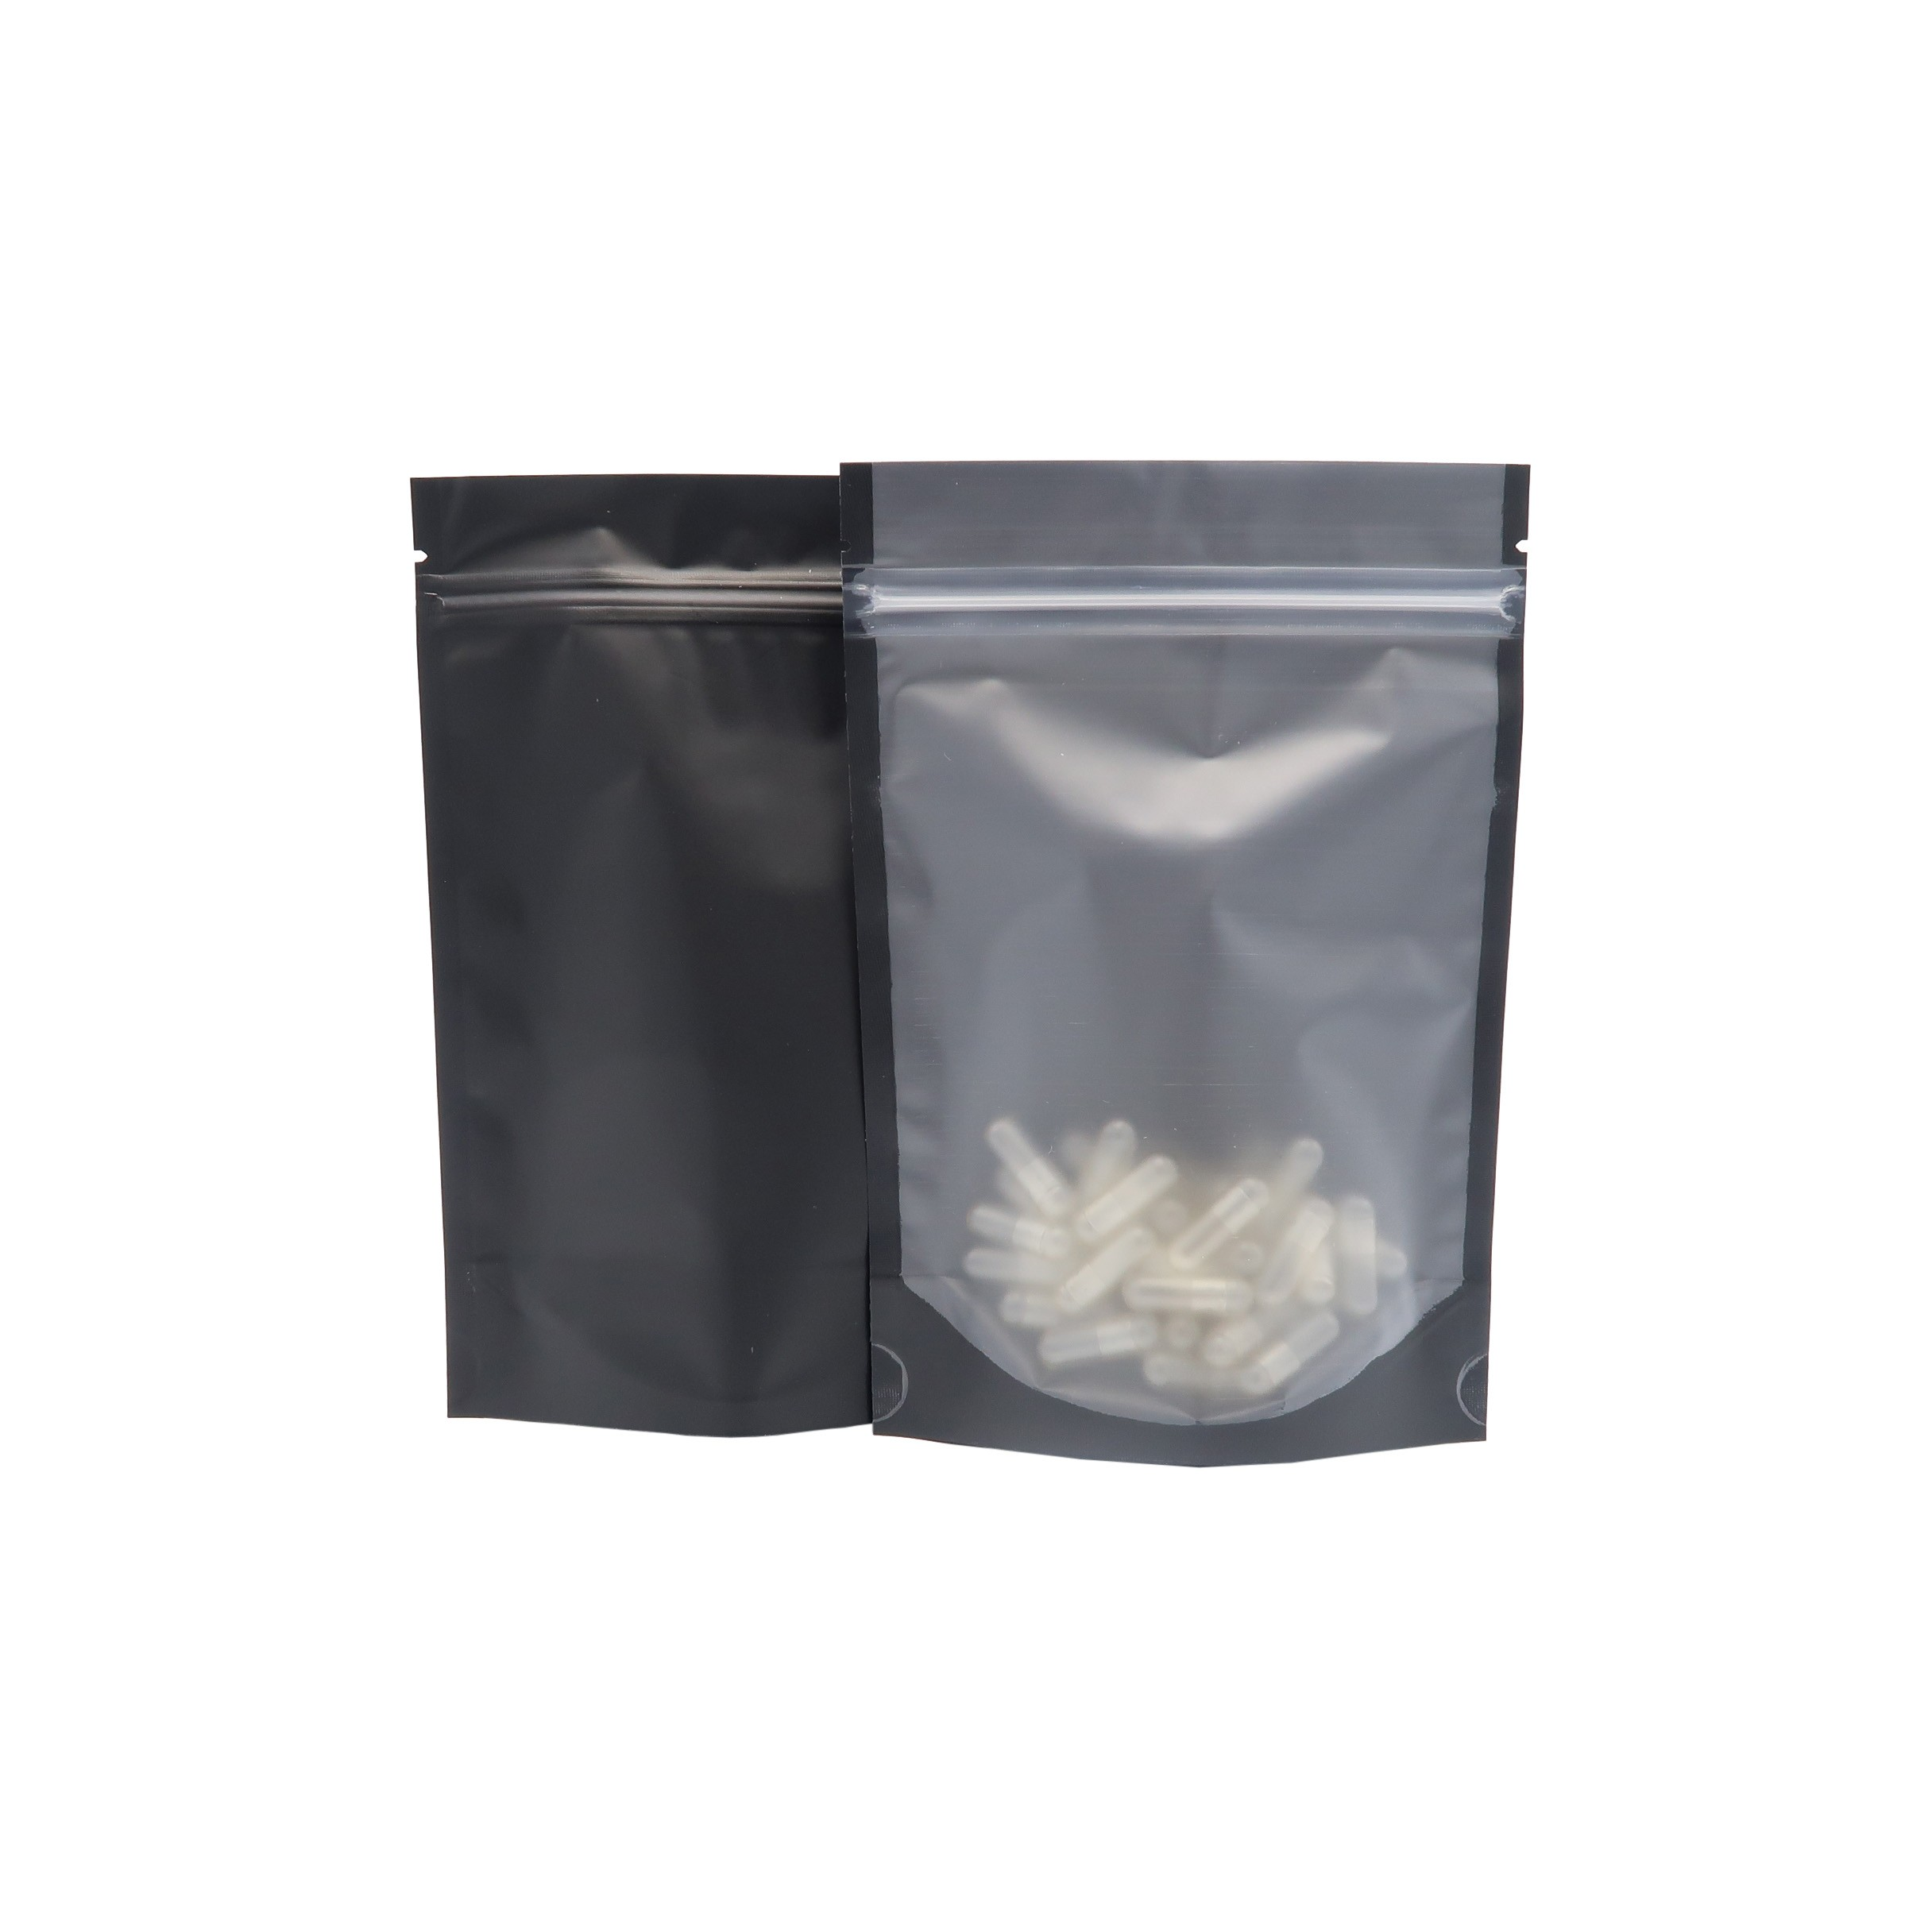 Translucent and Black Stand-Up Poly Plastic Ziplock Bags 10x 15 cm [4 inches x 6 inches] (500 Bags/Lot)